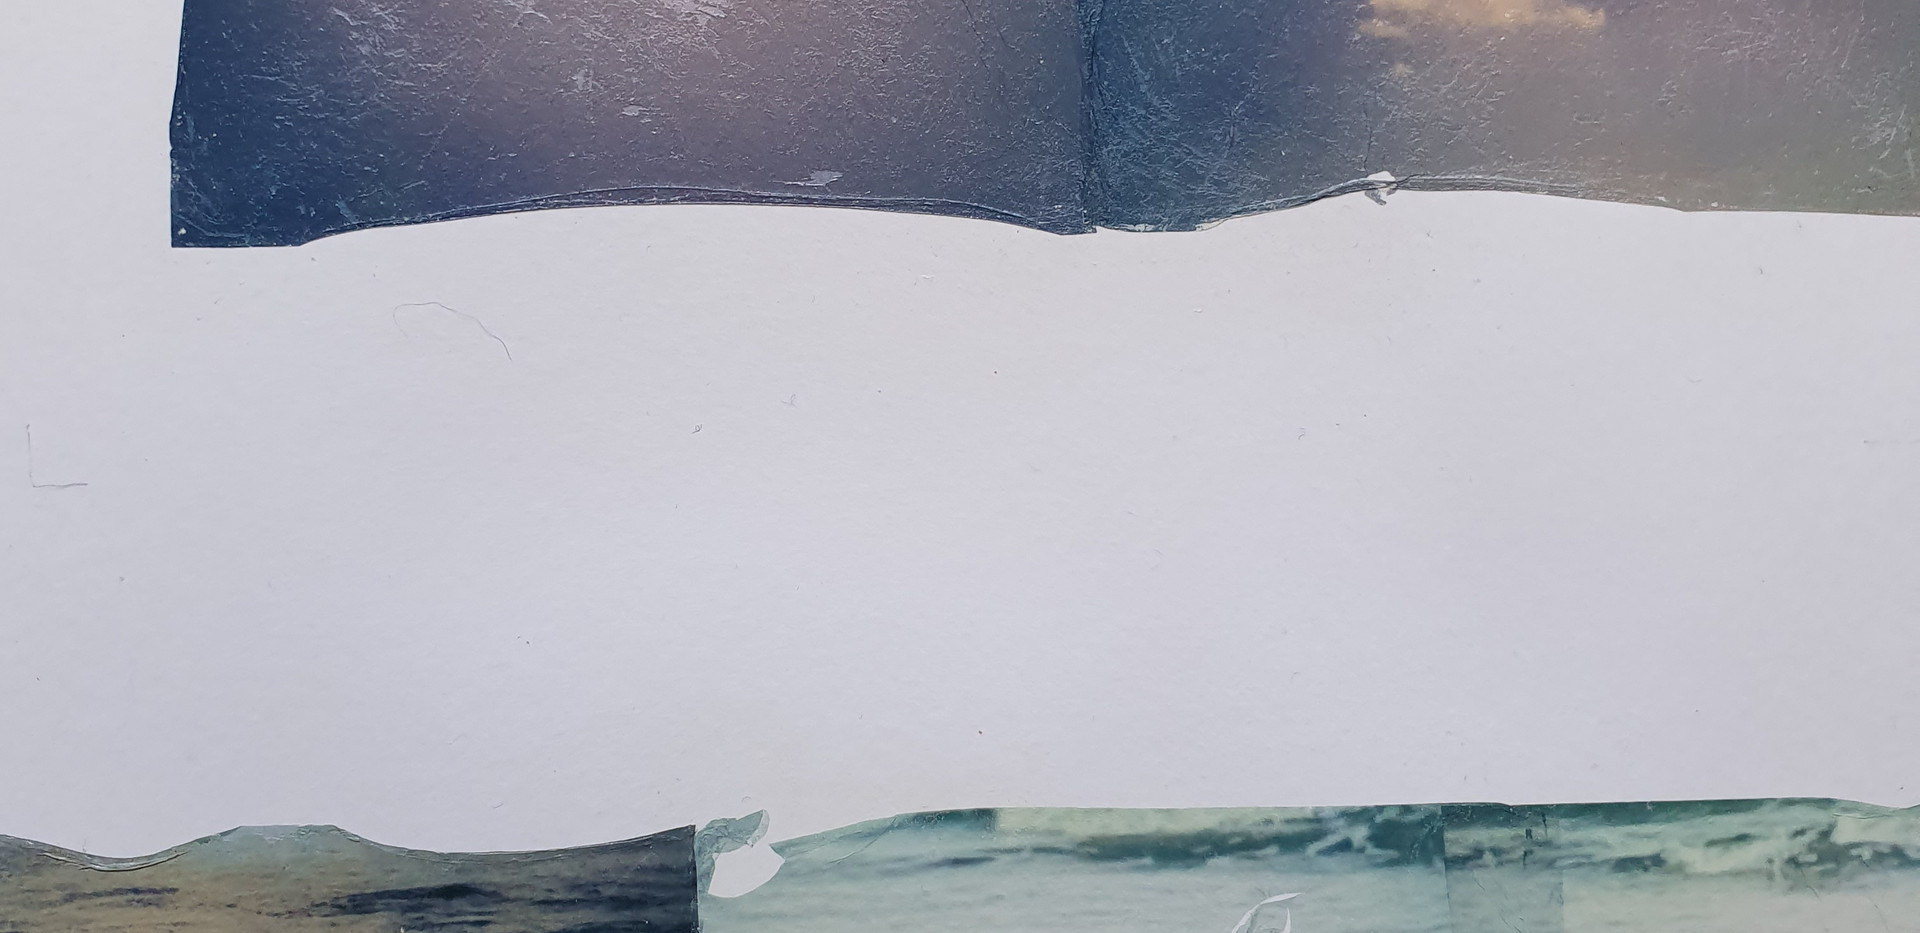 DETAIL from 'A Seascape Imagined', 2020